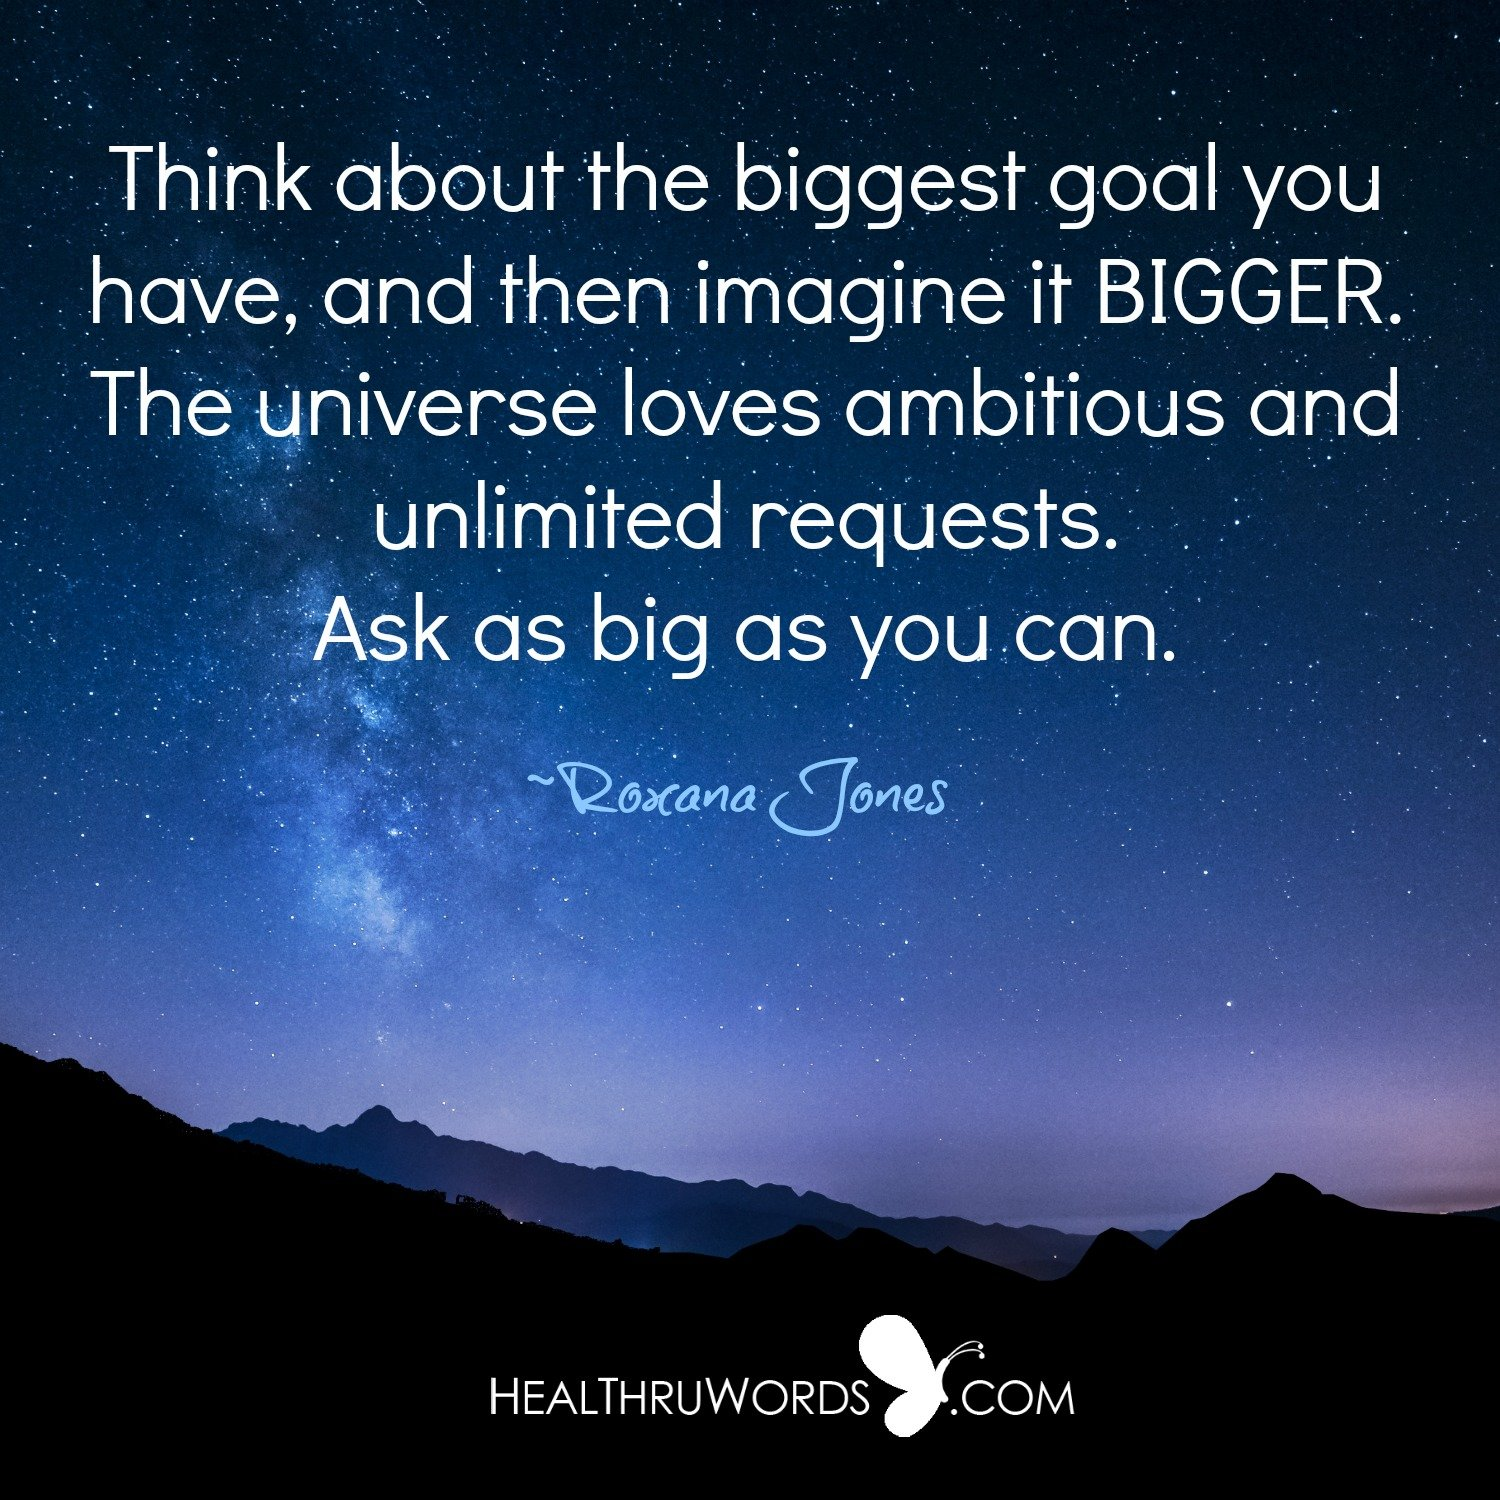 Inspirational Image: Bigger than your Mind